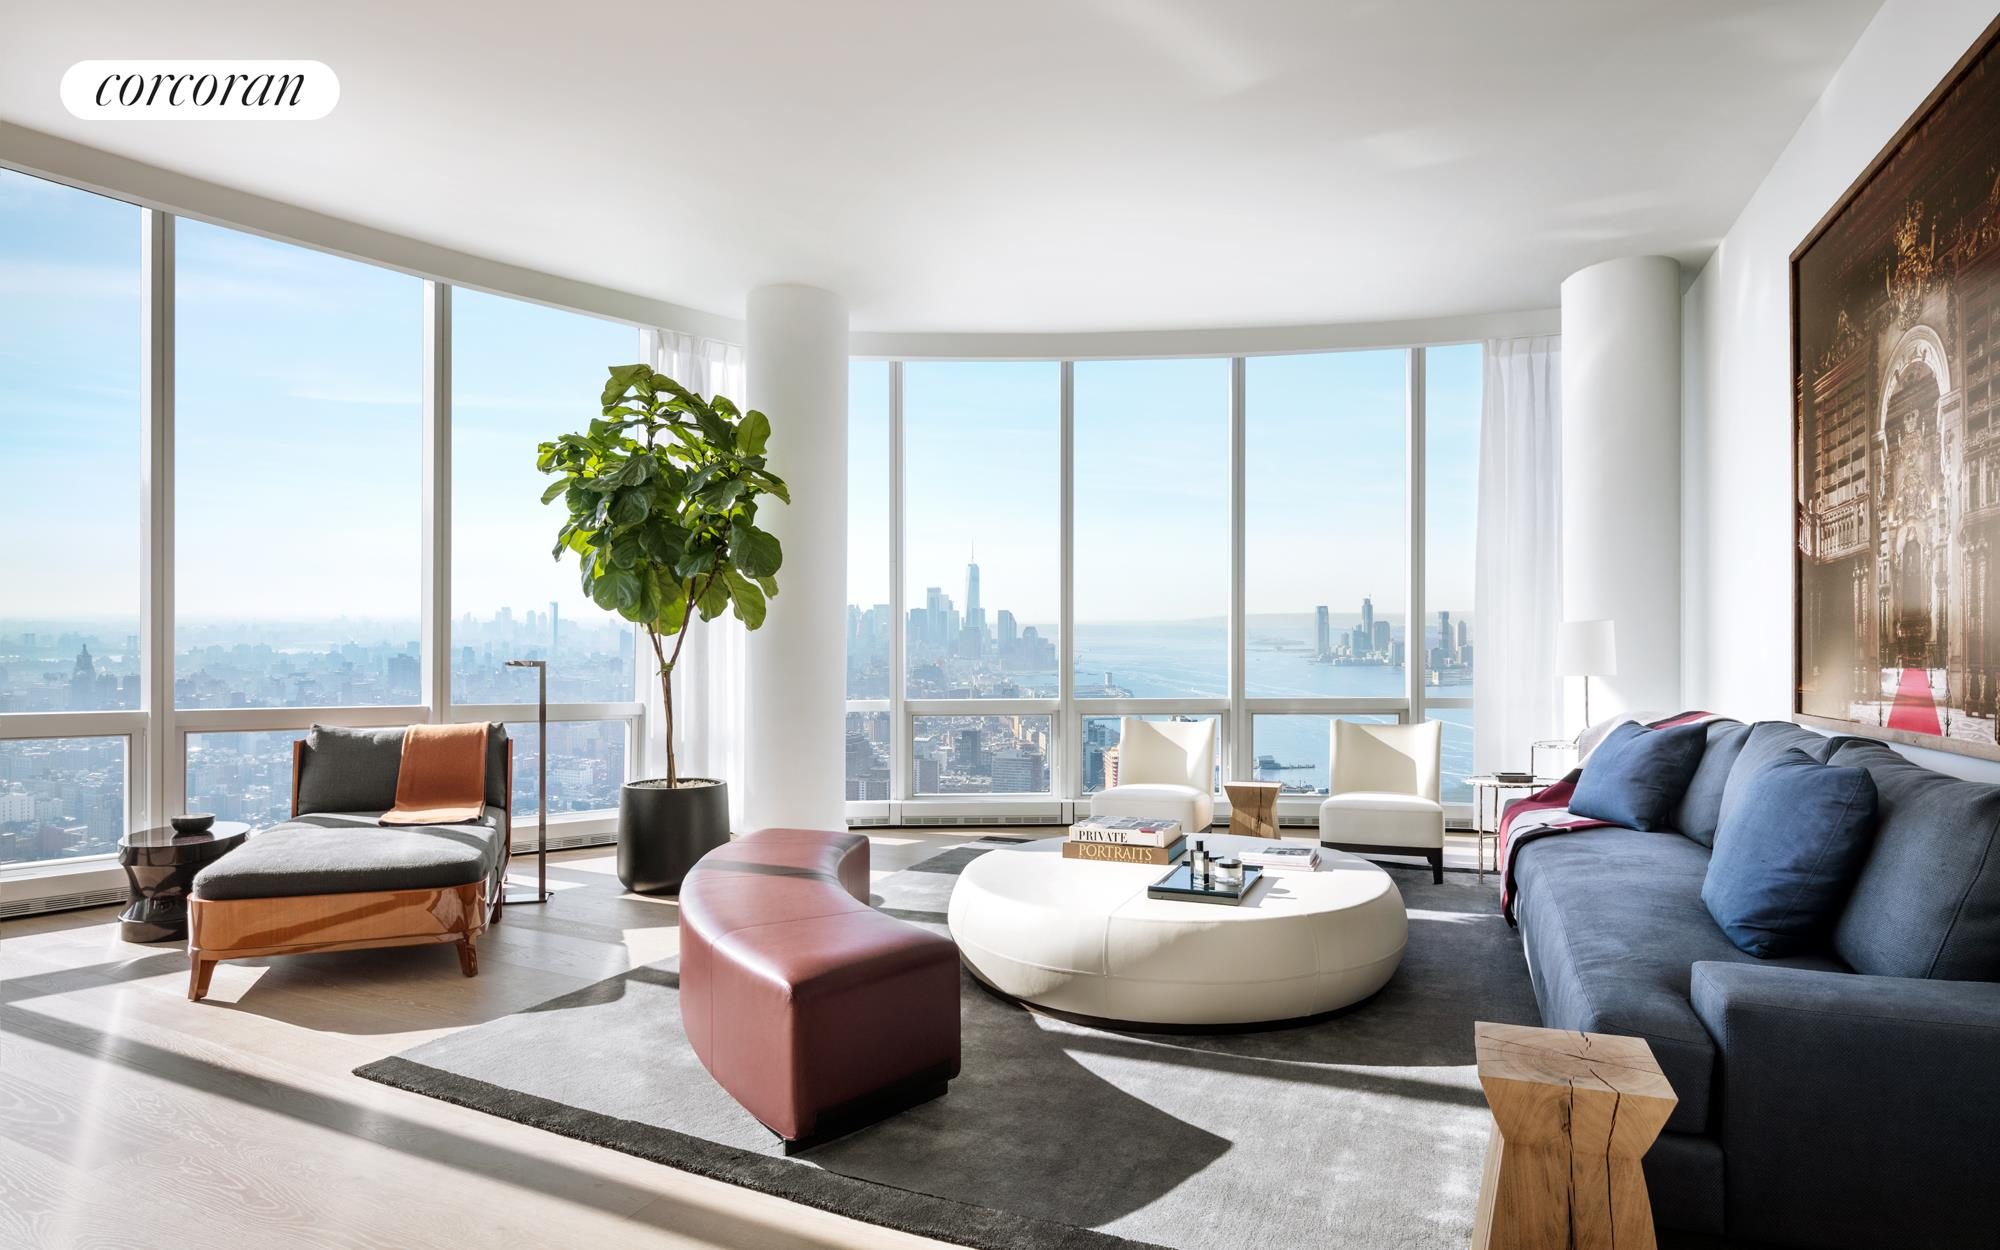 """GRAND AND DRAMATIC FOUR-BEDROOM PENTHOUSE WITH SPECTACULAR RIVER AND CITY VIEWS!    This is one of the last remaining penthouses on the coveted southeast corner of Fifteen Hudson Yards, where the views for miles extend past the Hudson River, Statue of Liberty, Freedom Tower and East River bridges to include, on a clear day, the Atlantic Ocean!    From the moment you open the door to the wide art foyer, you are stunned by the wide open vistas. The giant great room with ceilings up to 10'10"""" and 13 floor-to-ceiling windows frame unforgettable Hudson River and Manhattan skyline views. The separate eat-in   kitchen features a grand marble island, Bulthaup cabinetry with large pantry and Miele appliances including double ovens and wine storage, with a comfortable breakfast room for casual dining. The master suite enjoys southerly river views, a windowed bathroom   with soaking tub and large shower and generous closets (four in total). Three additional bedroom suites enjoy en-suite baths while the walk-in laundry room, service entrance and closets galore make this a truly special home!    Designed by Diller Scofidio + Renfro in collaboration with Rockwell Group, Fifteen Hudson Yards offers residents over 40,000 square feet of amenities on three floors. Floor 50 has been devoted to the full range of fitness and wellness opportunities, including   an aquatics center with a 75-foot long swimming pool, a 3,500 square foot fitness center designed by The Wright Fit, private studio for yoga, stretching and group fitness classes, spa with treatment rooms, and a beauty bar for hair and makeup services. Floor   51 features two corner private dinner suites including wine storage and tasting rooms, lounge with breathtaking Hudson River views, club room with billiards tables, card tables and large-screen TV, a screening room, business center, golf club lounge, and an   atelier with communal working table and lounge seating.     Occupying a prime position on the Public Square and Garde"""